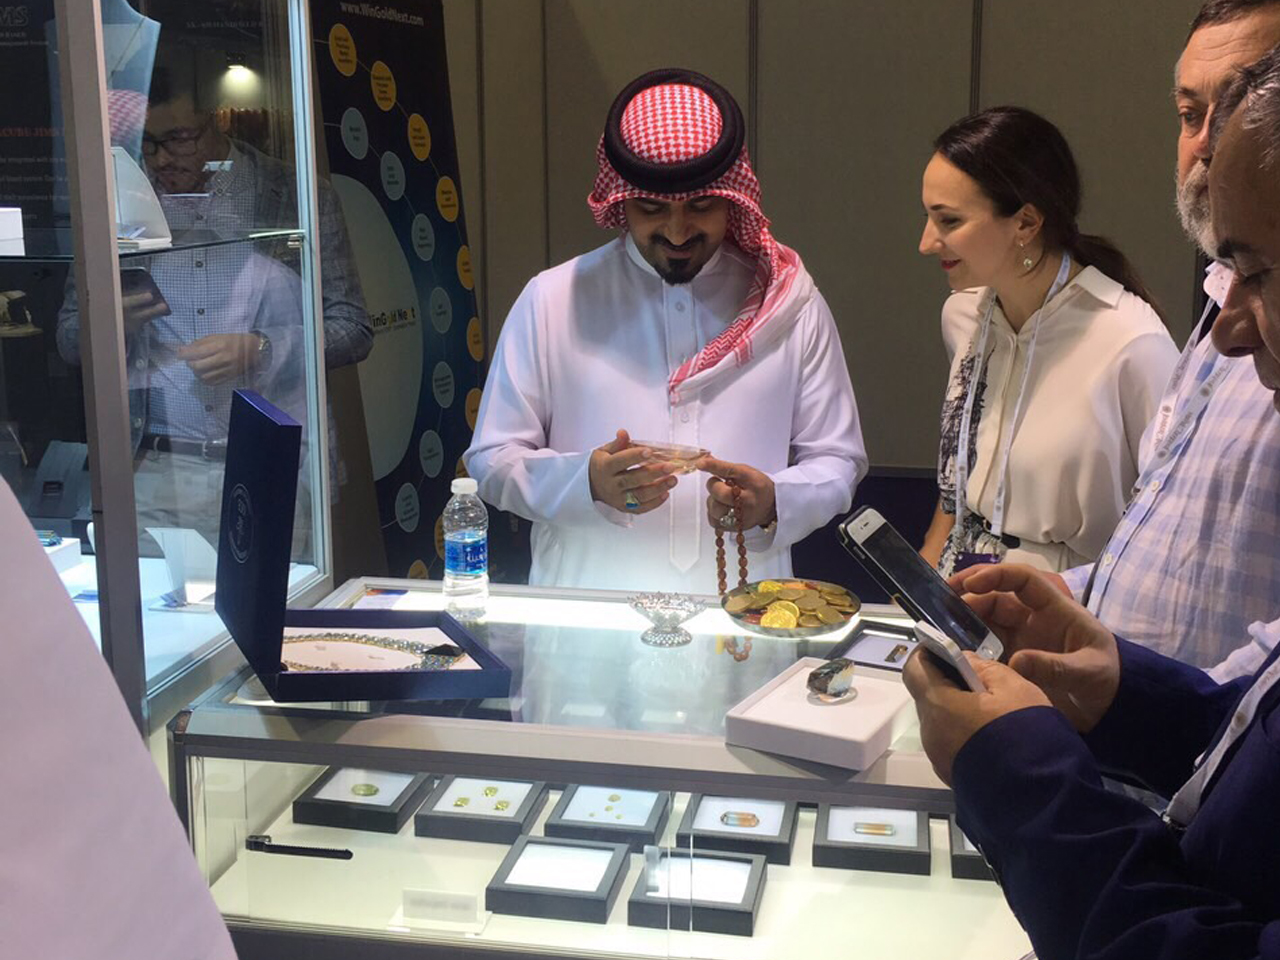 For the first time, QUARTS SAMOCVETI took part in the Jewellery Arabia 2018 exhibition in the Kingdom of Bahrain.